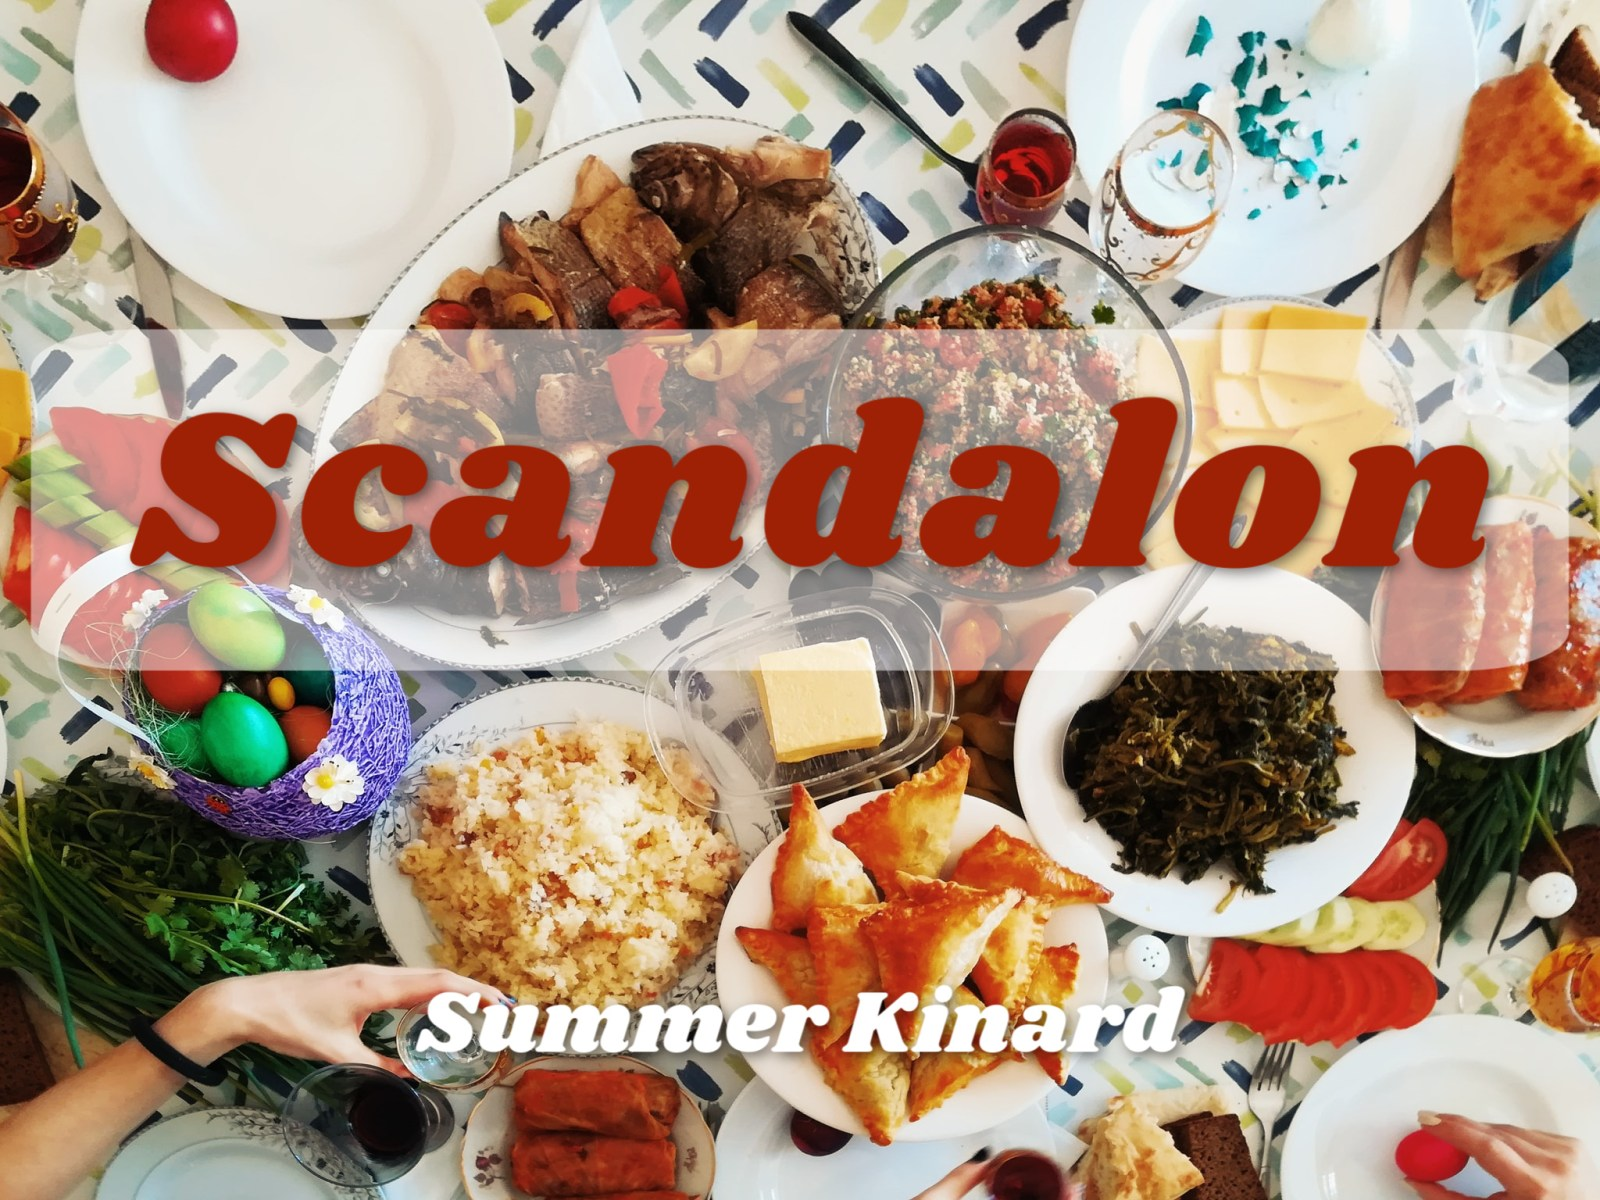 Scandalon, Summer Kinard, text over background of heavily laden table at a big feast